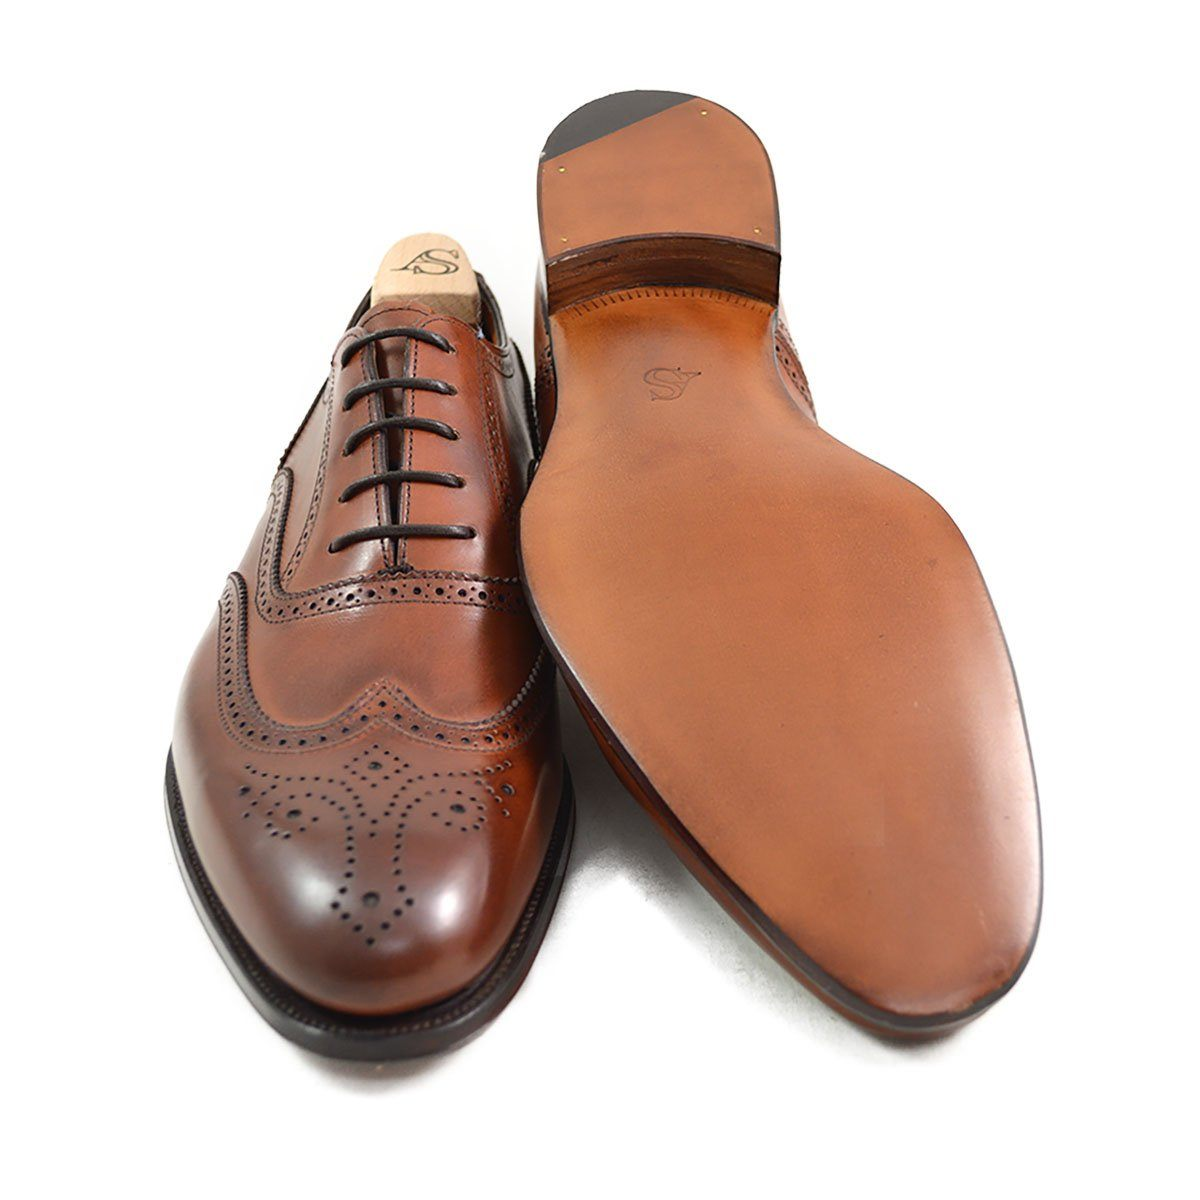 f203cd84959 Alfred Sargent HUNT MAHOGANY - 12F Last Pair - A Fine Pair of Shoes -  English Handmade Shoes and Brogues Online